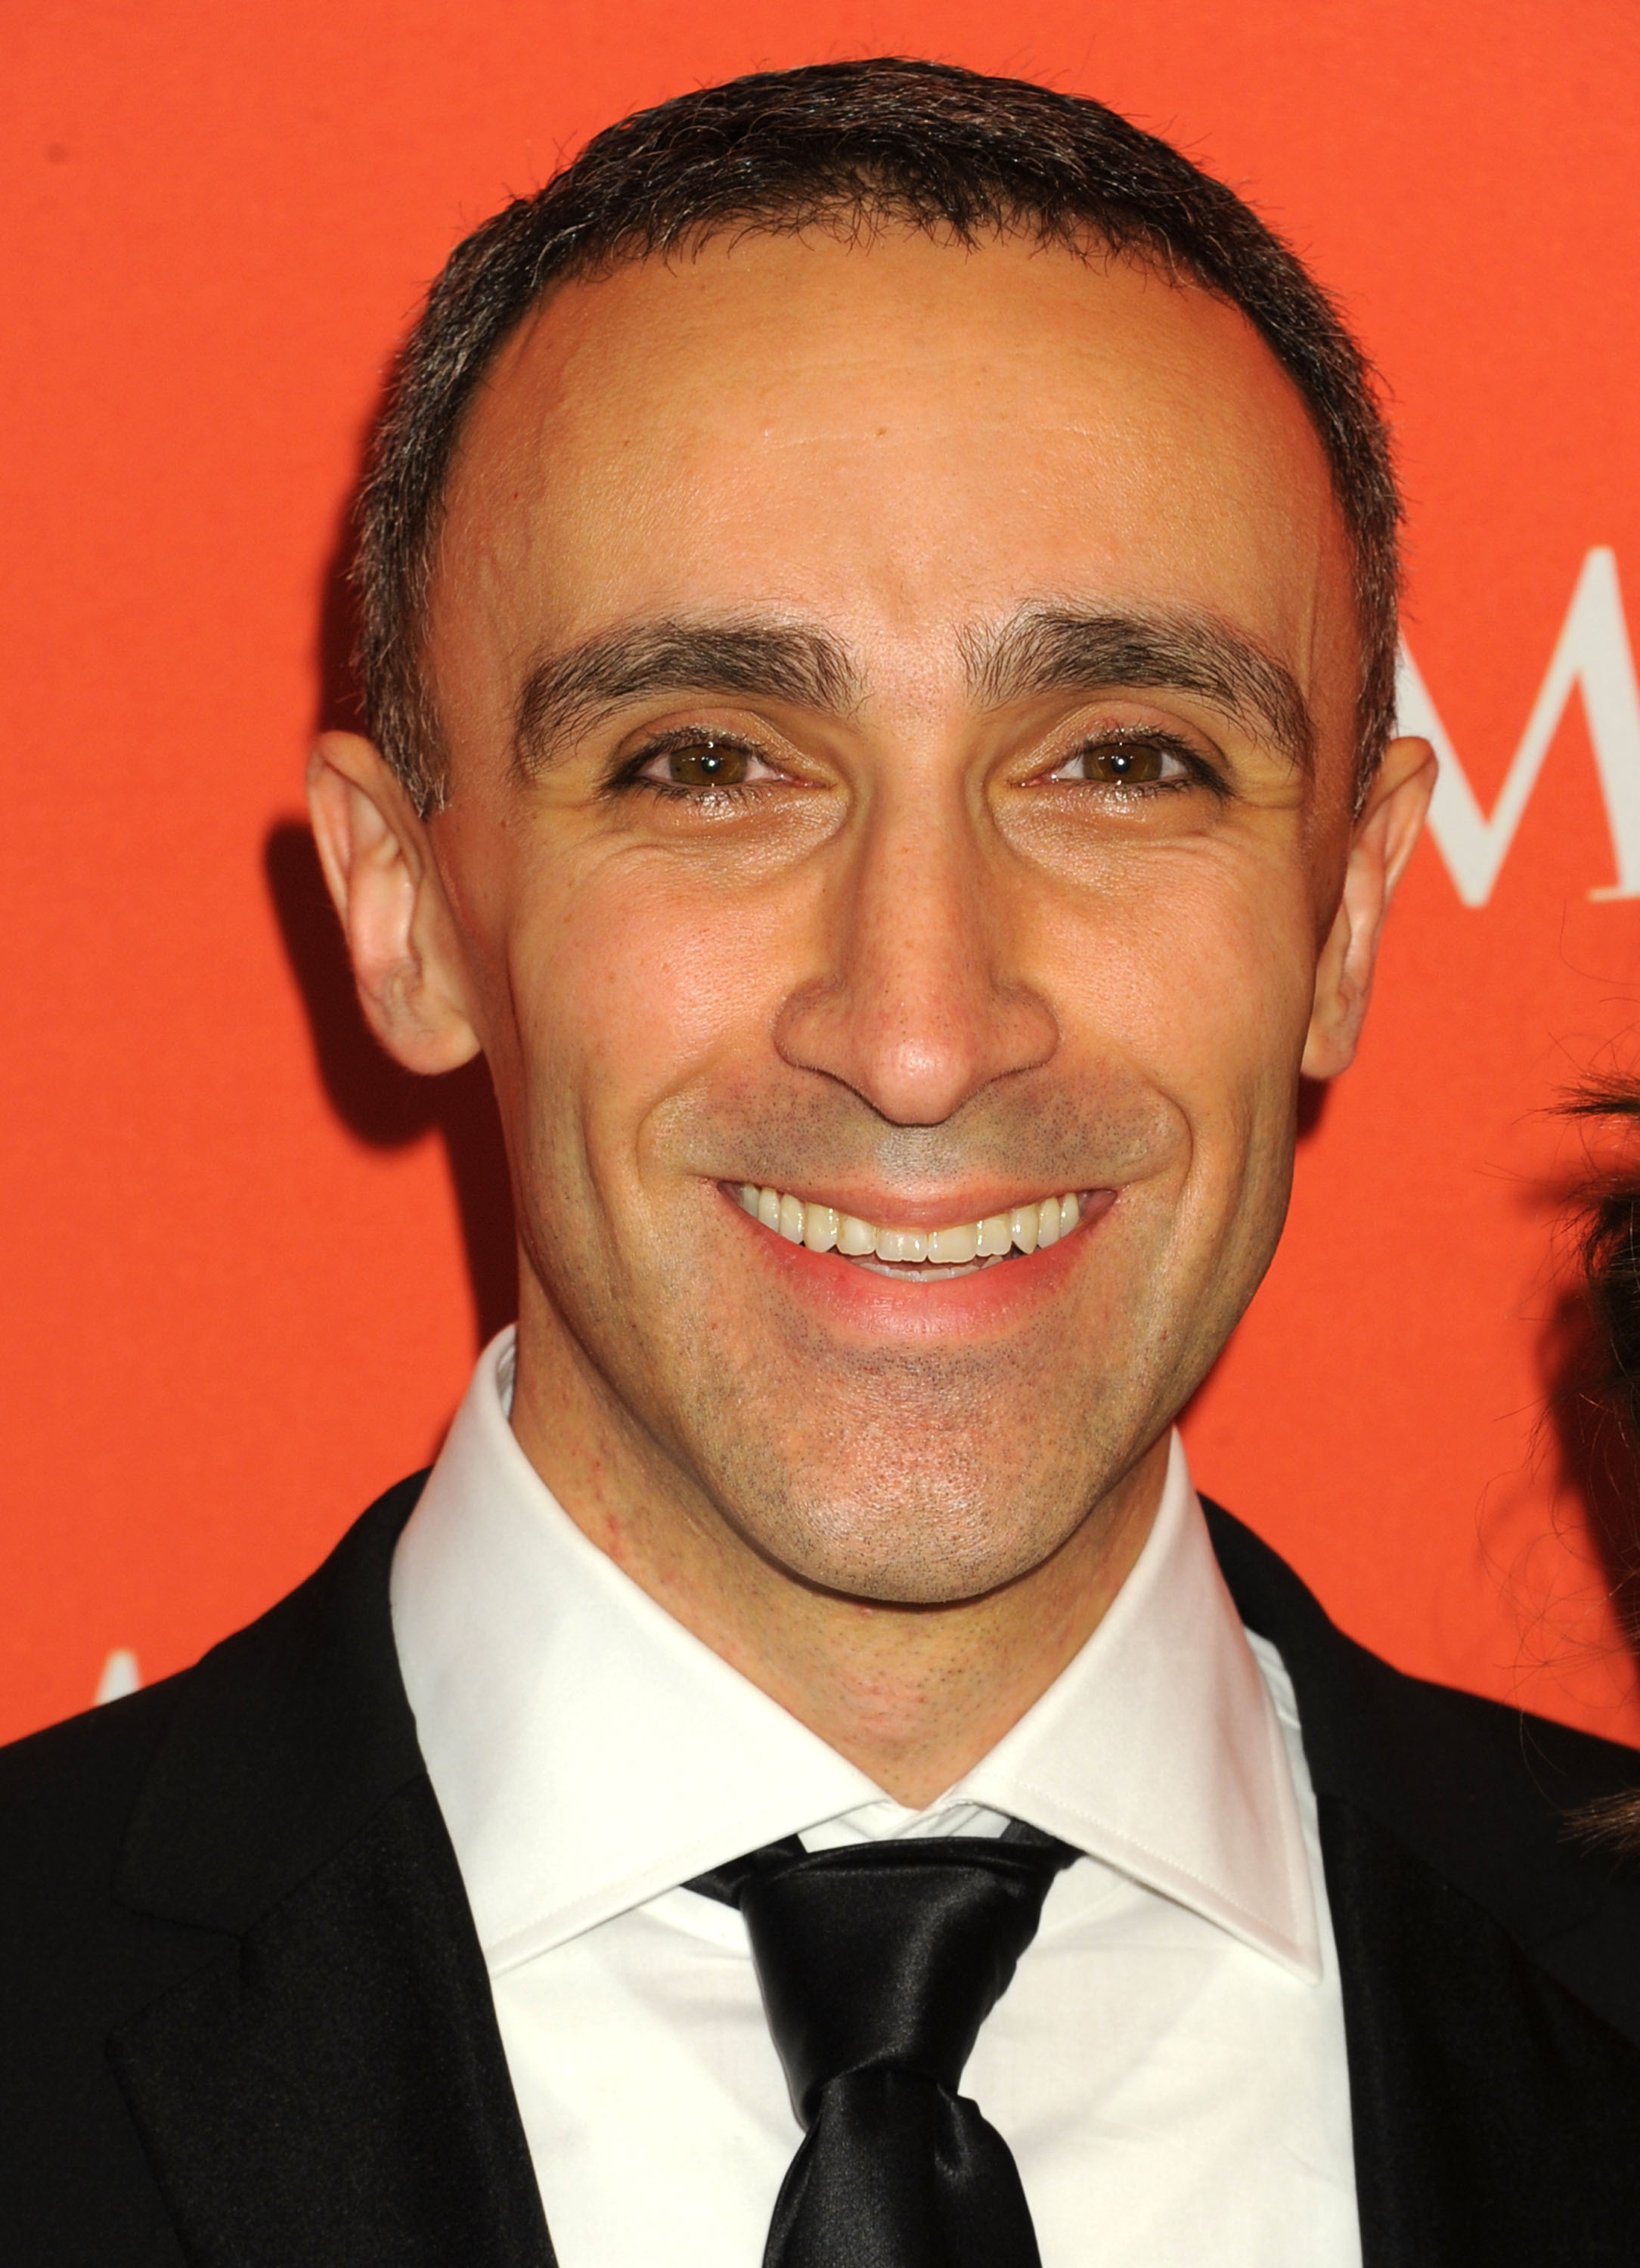 Chief Executive Officer of Match Sam Yagan attends the 2013 Time 100 Gala at Frederick P. Rose Hall, Jazz at Lincoln Center on April 23, 2013 in New York City.